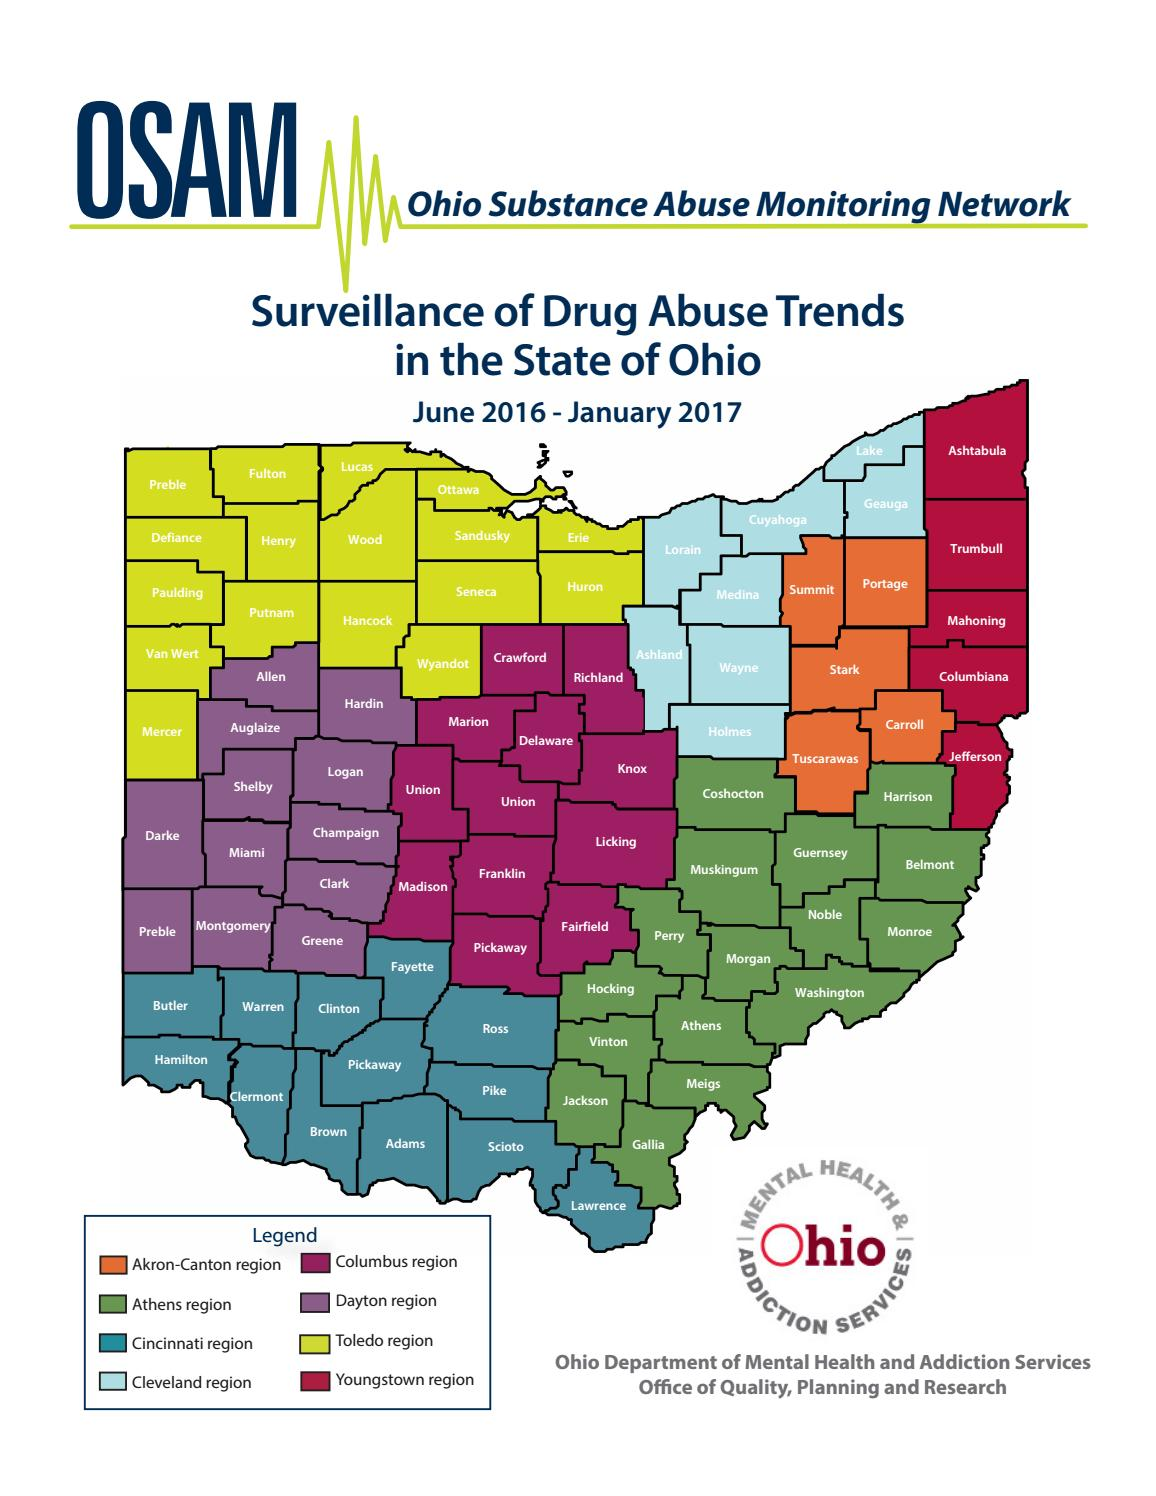 Drug abuse trends in the state of Ohio by The Columbus